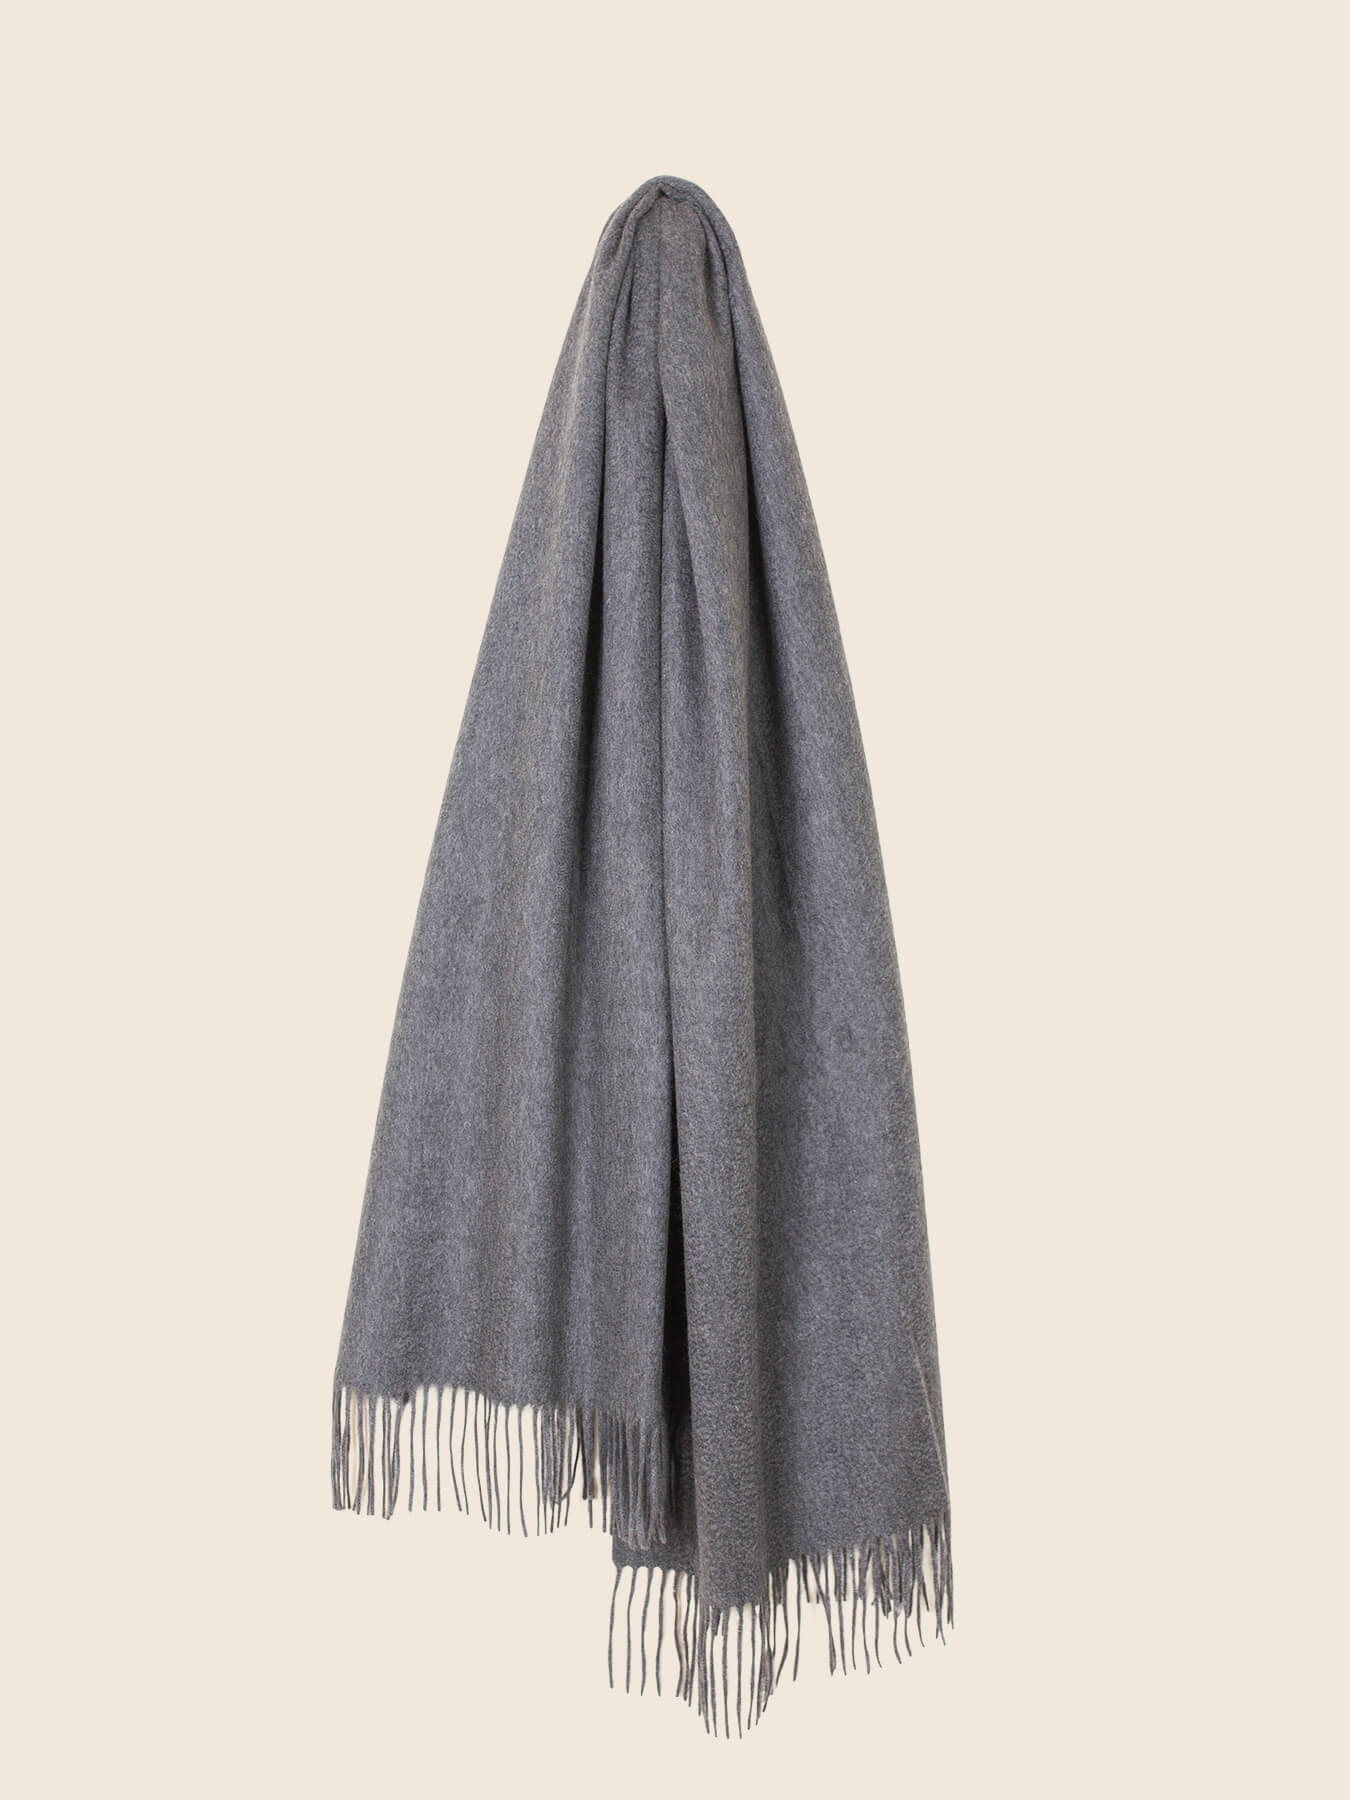 Staple Plain Cashmere Shawl Grey 1